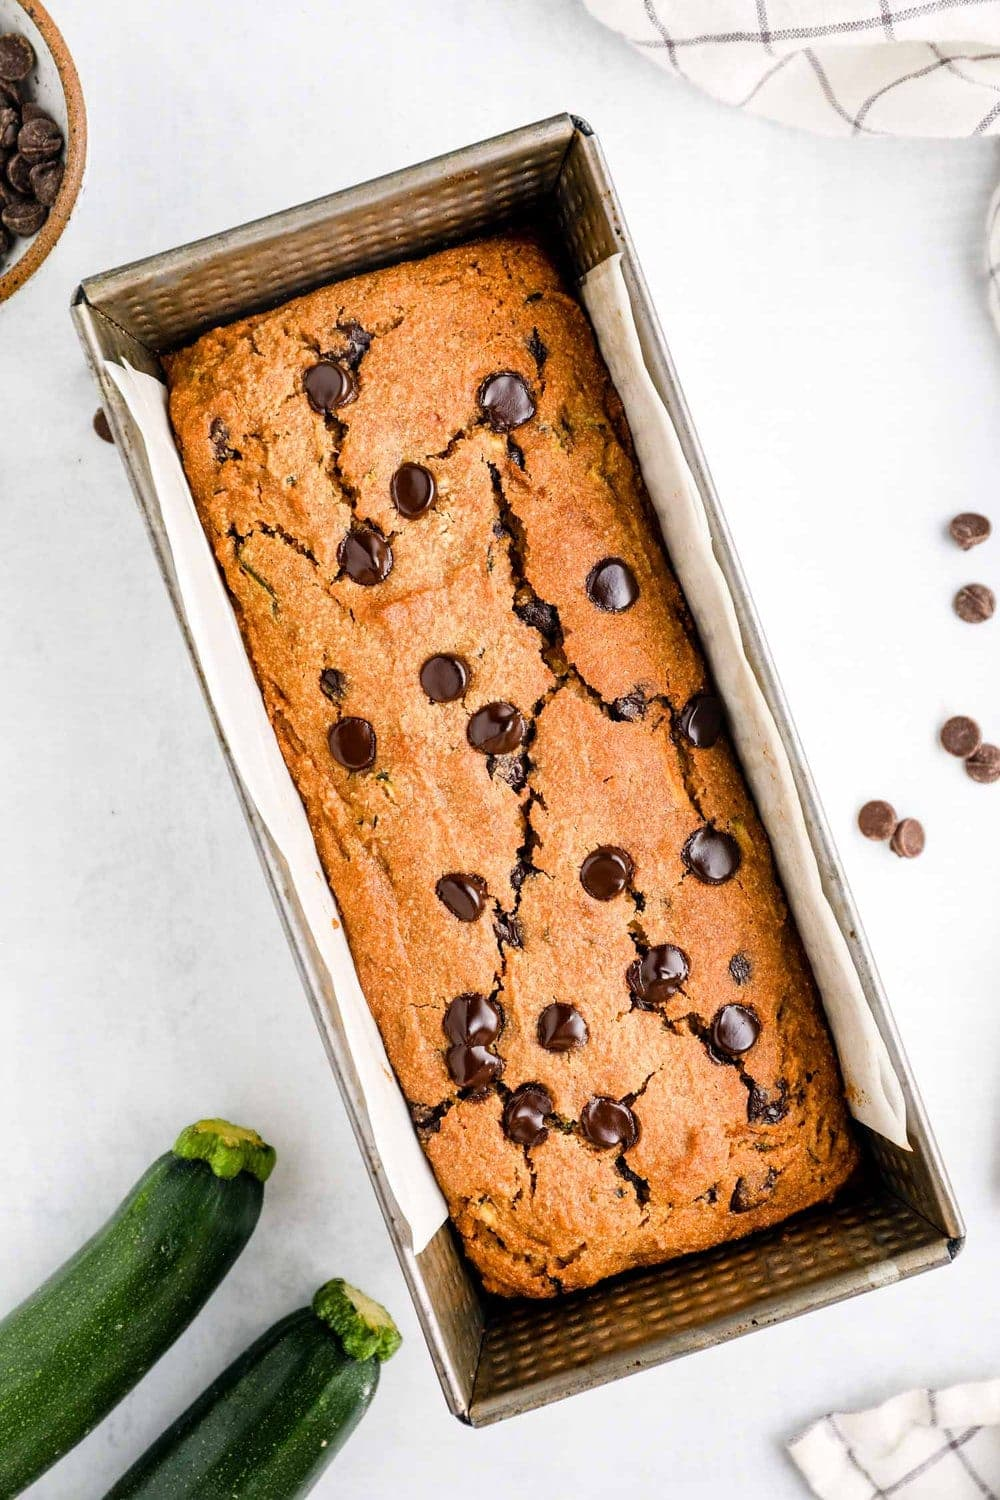 Gluten Free Vegan Zucchini Bread in the pan just out of the oven.